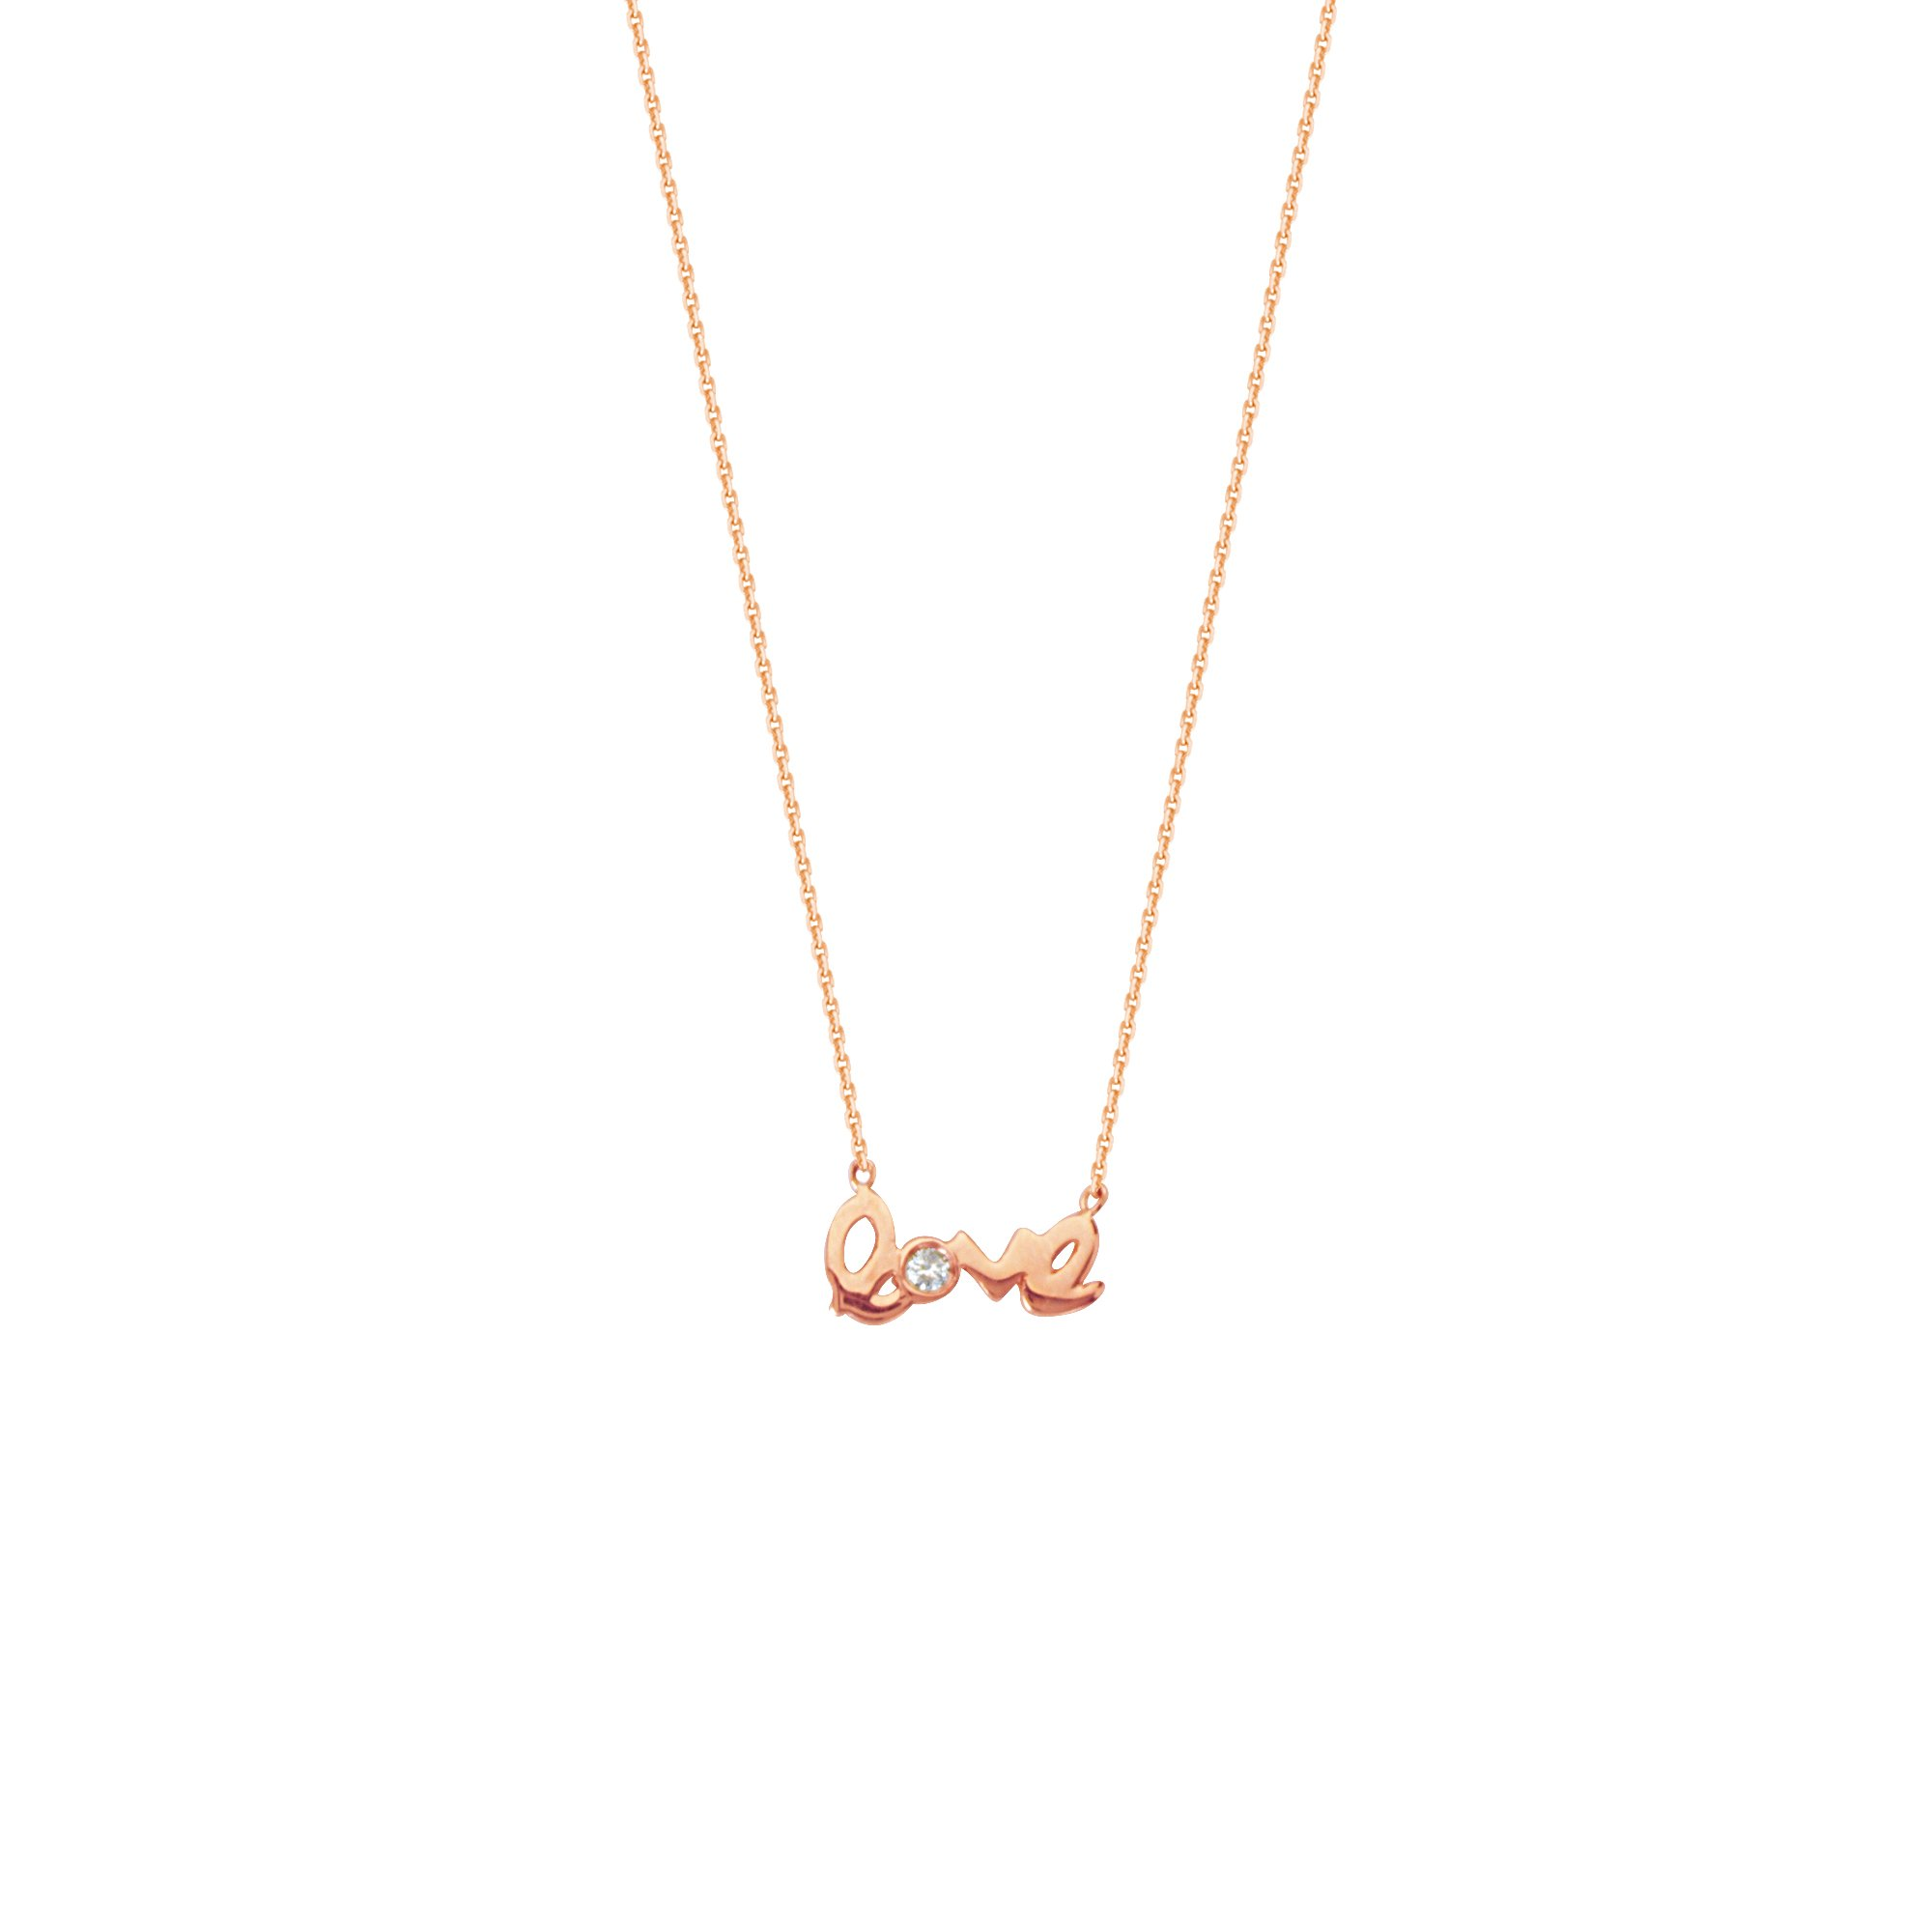 LOVE NECKLACE, 14KT GOLD & DIAMOND NECKLACE 18'' INCHES